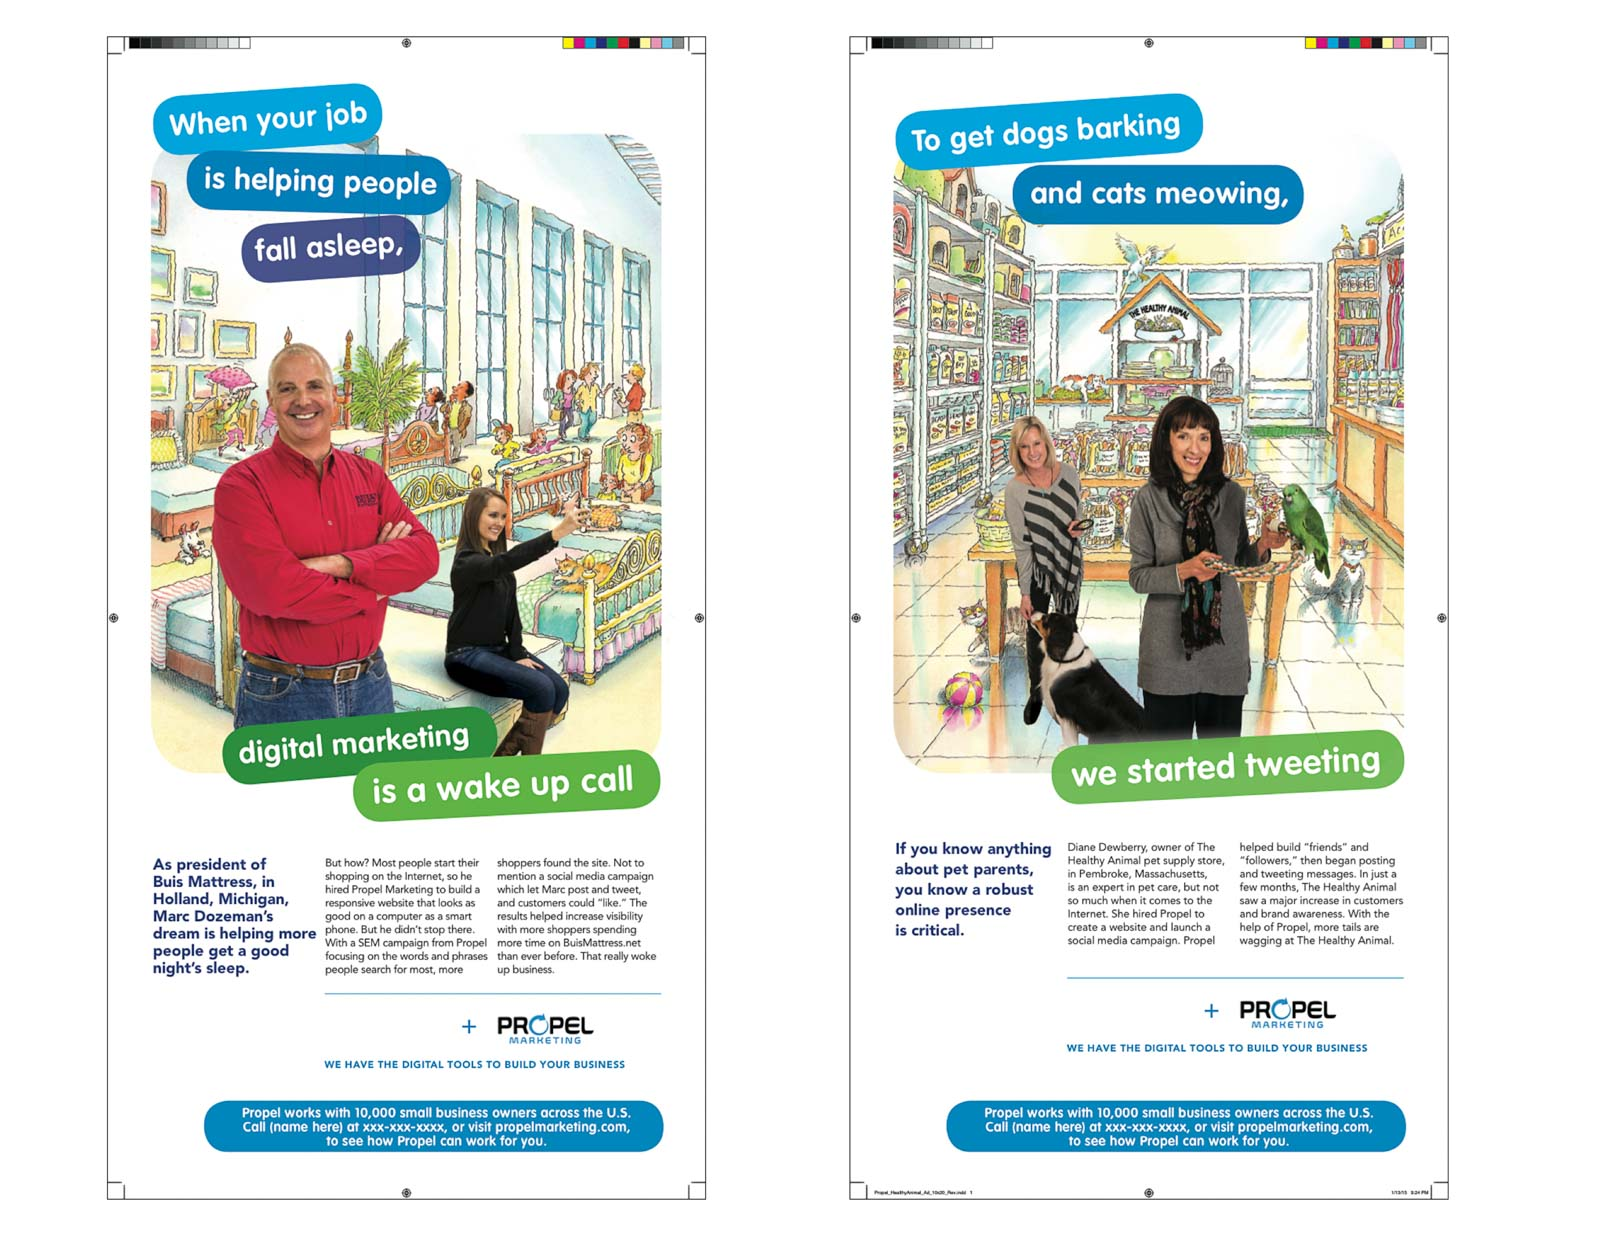 Advertising campaign for Propel Media